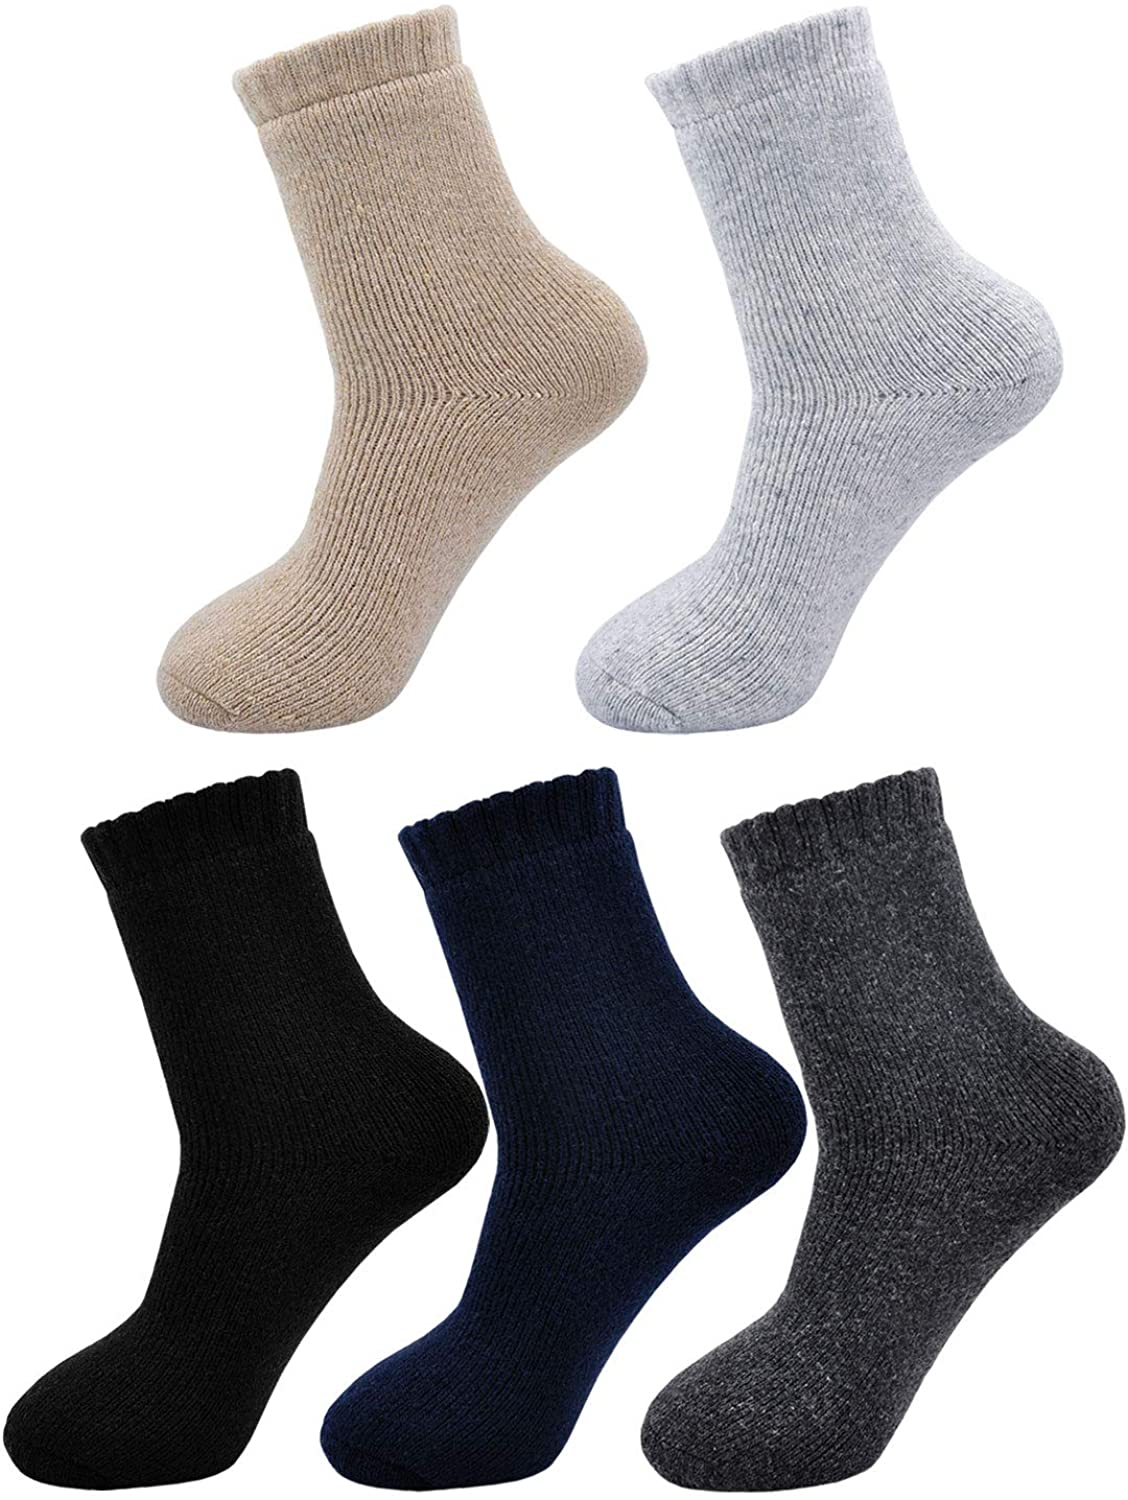 Men's Thick Sock Warm Super Soft Wool Winter Ankle Pure Color Socks Comfort Casual Fleece Blended for Man 5 Pairs